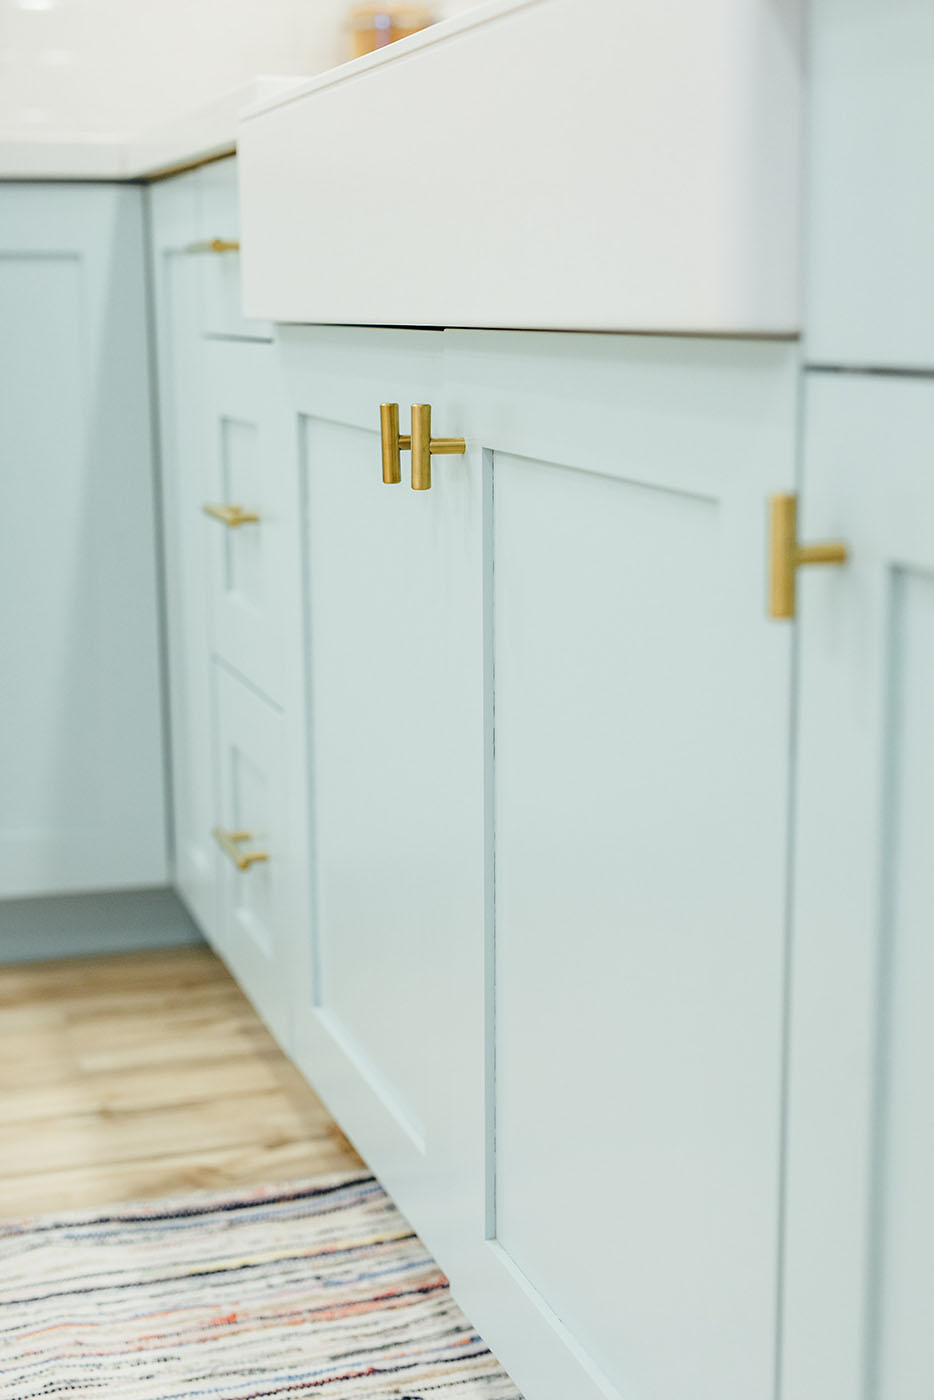 This kitchen makeover features the perfect kitchen cabinet paint color! Get kitchen cabinet paint color ideas plus tips on picking the right perfect color.